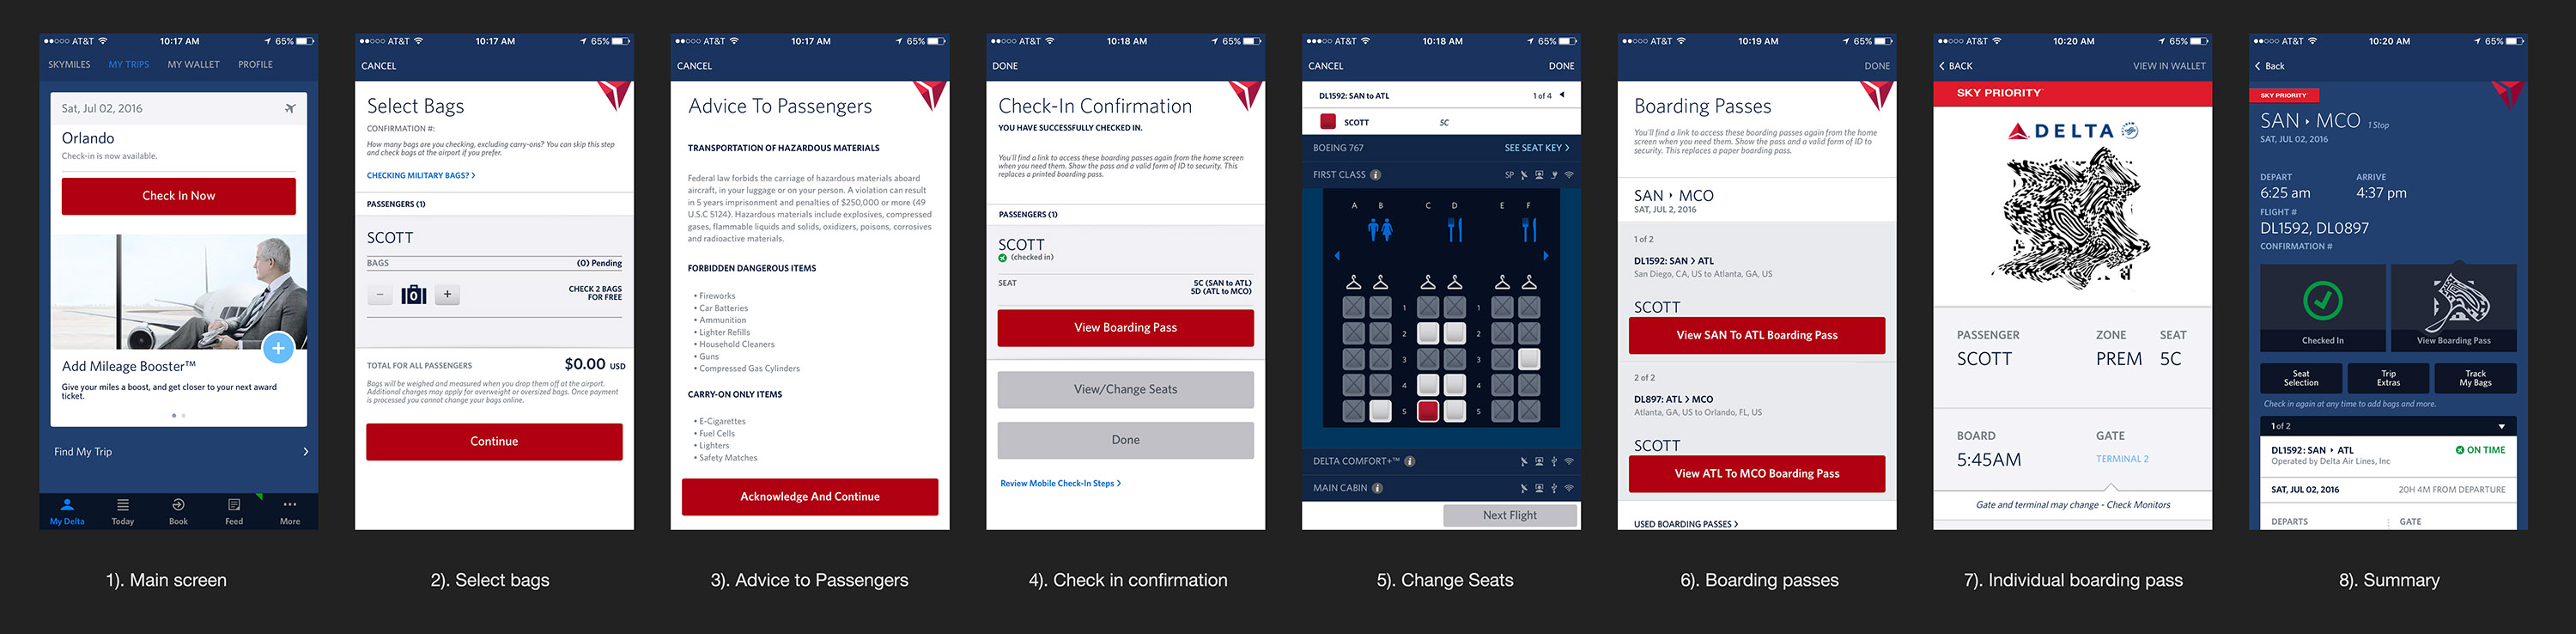 delta airlines mobile app check in